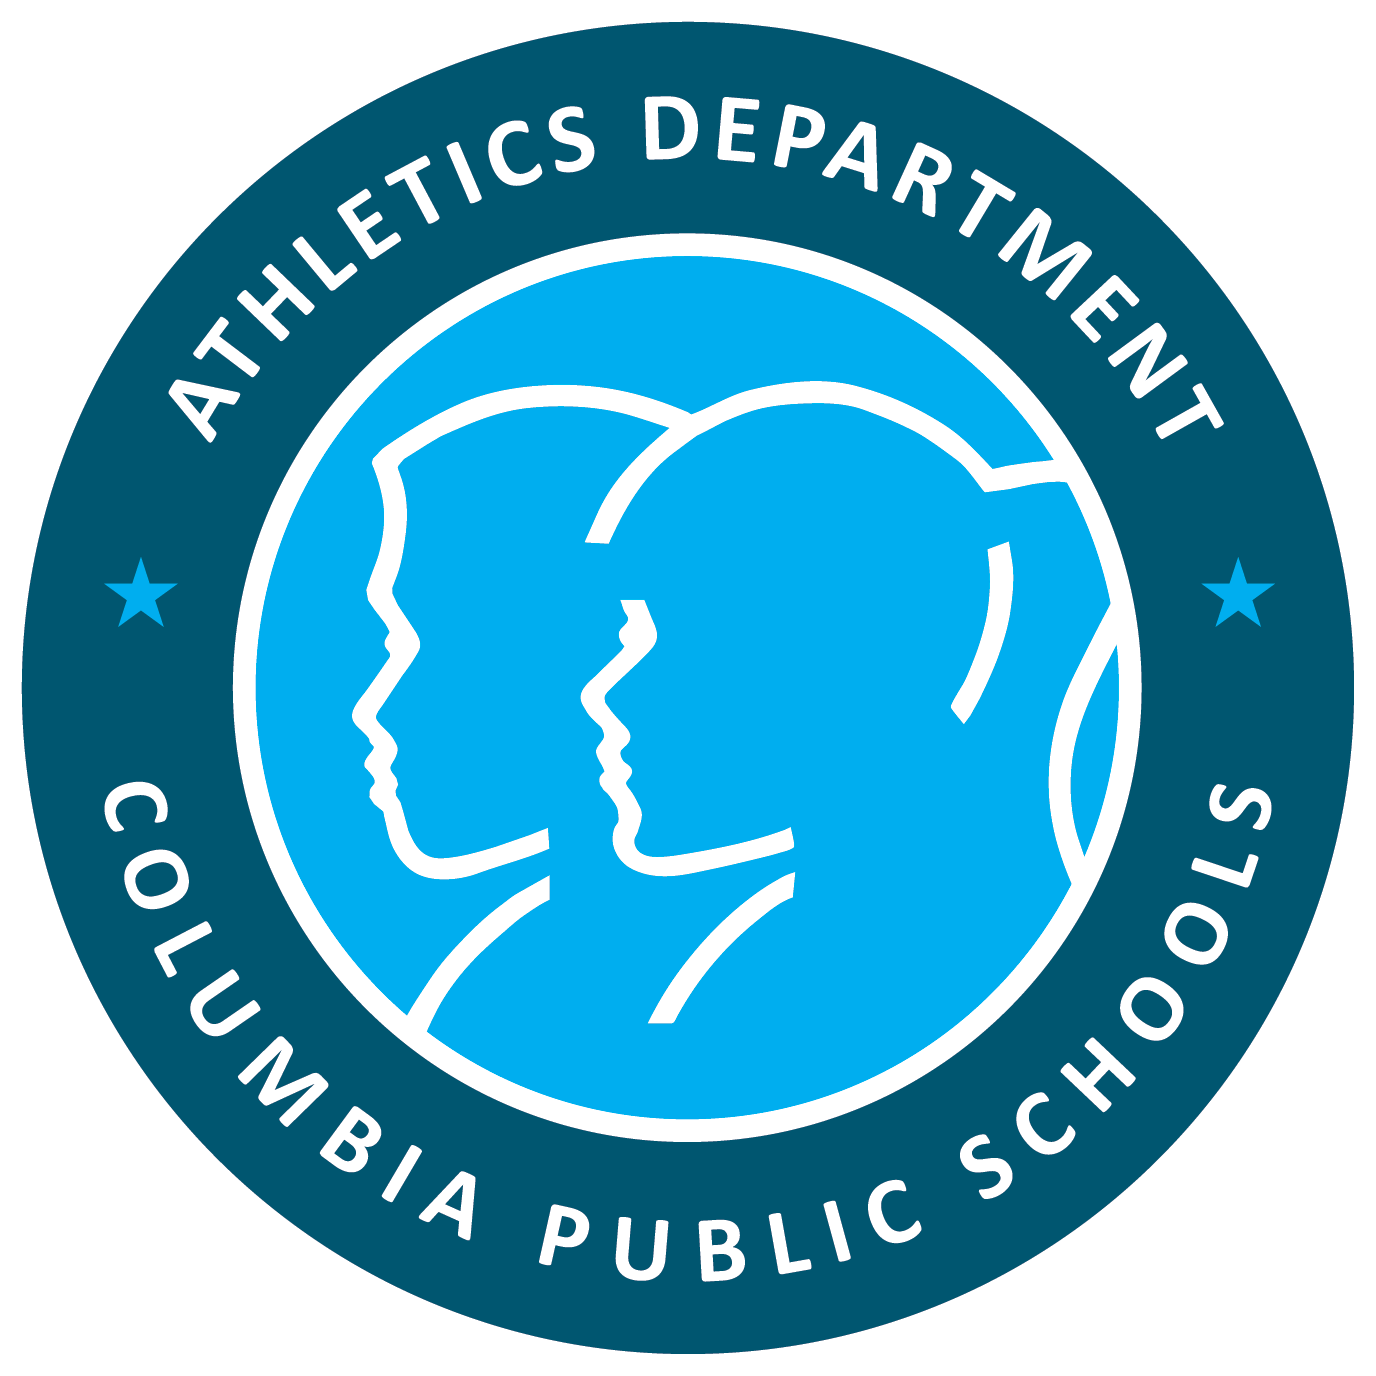 AthleticsDepartmentLogo